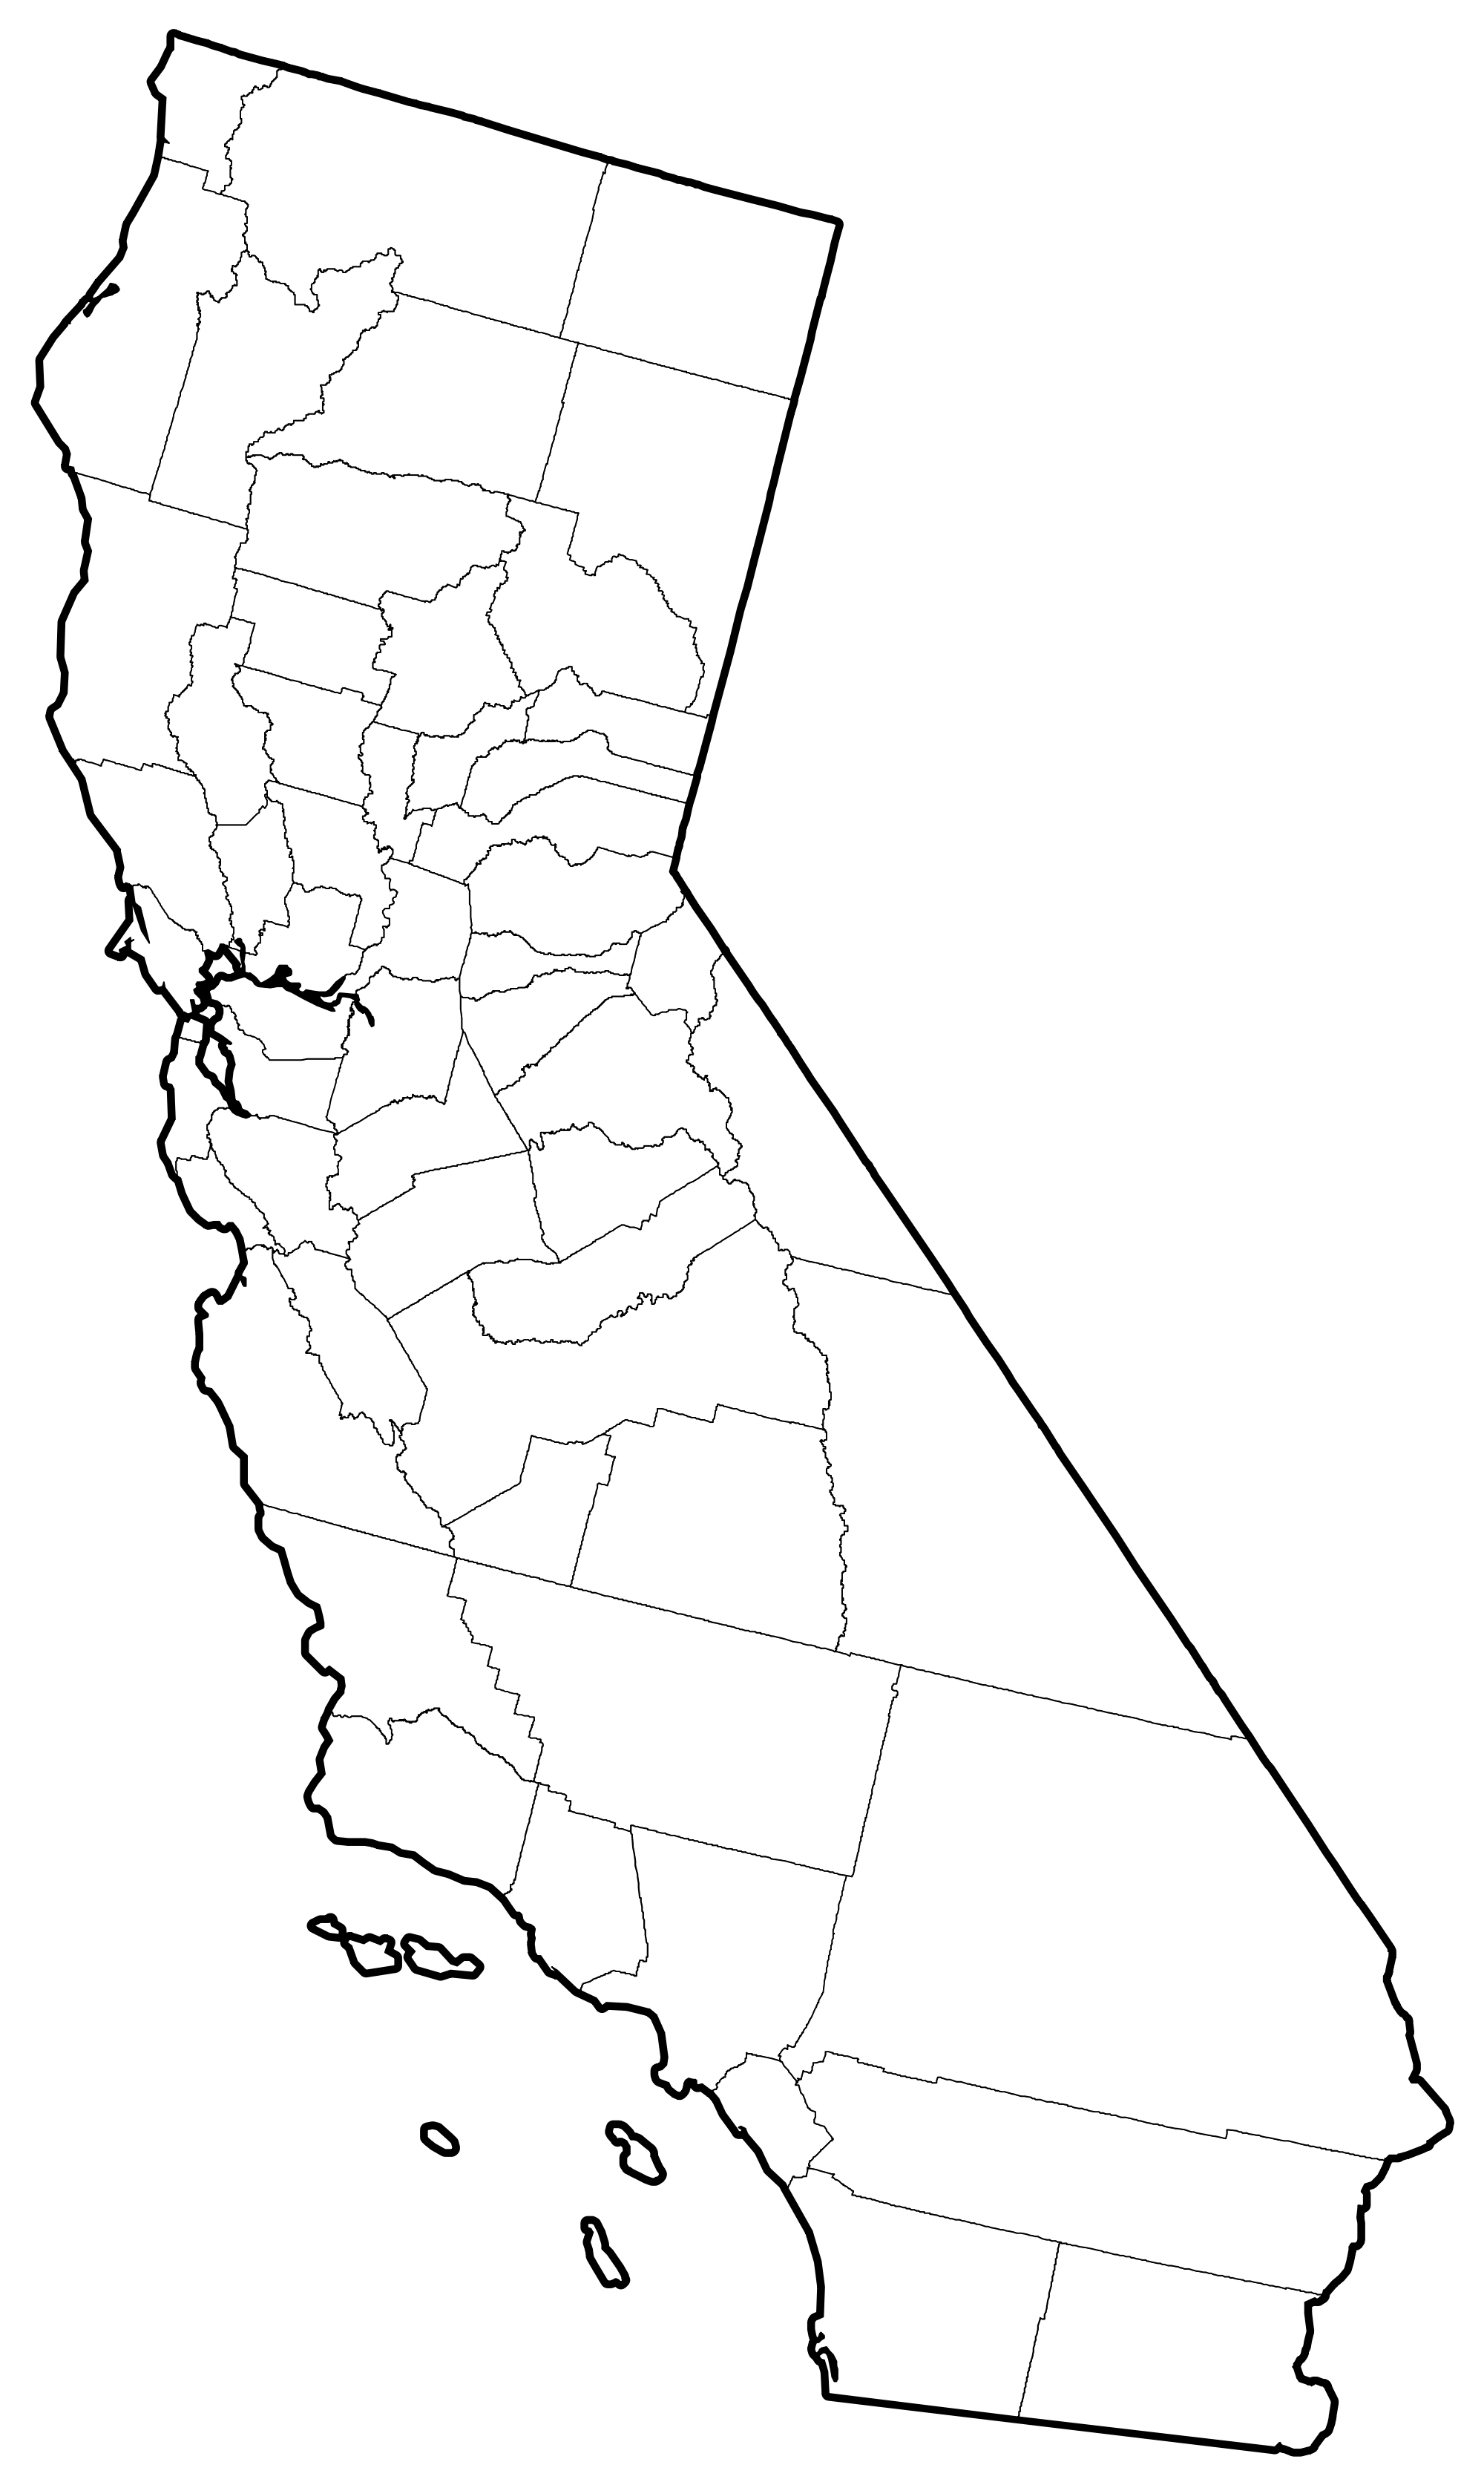 Map Of County Lines In California - Klipy - California Map With County Lines